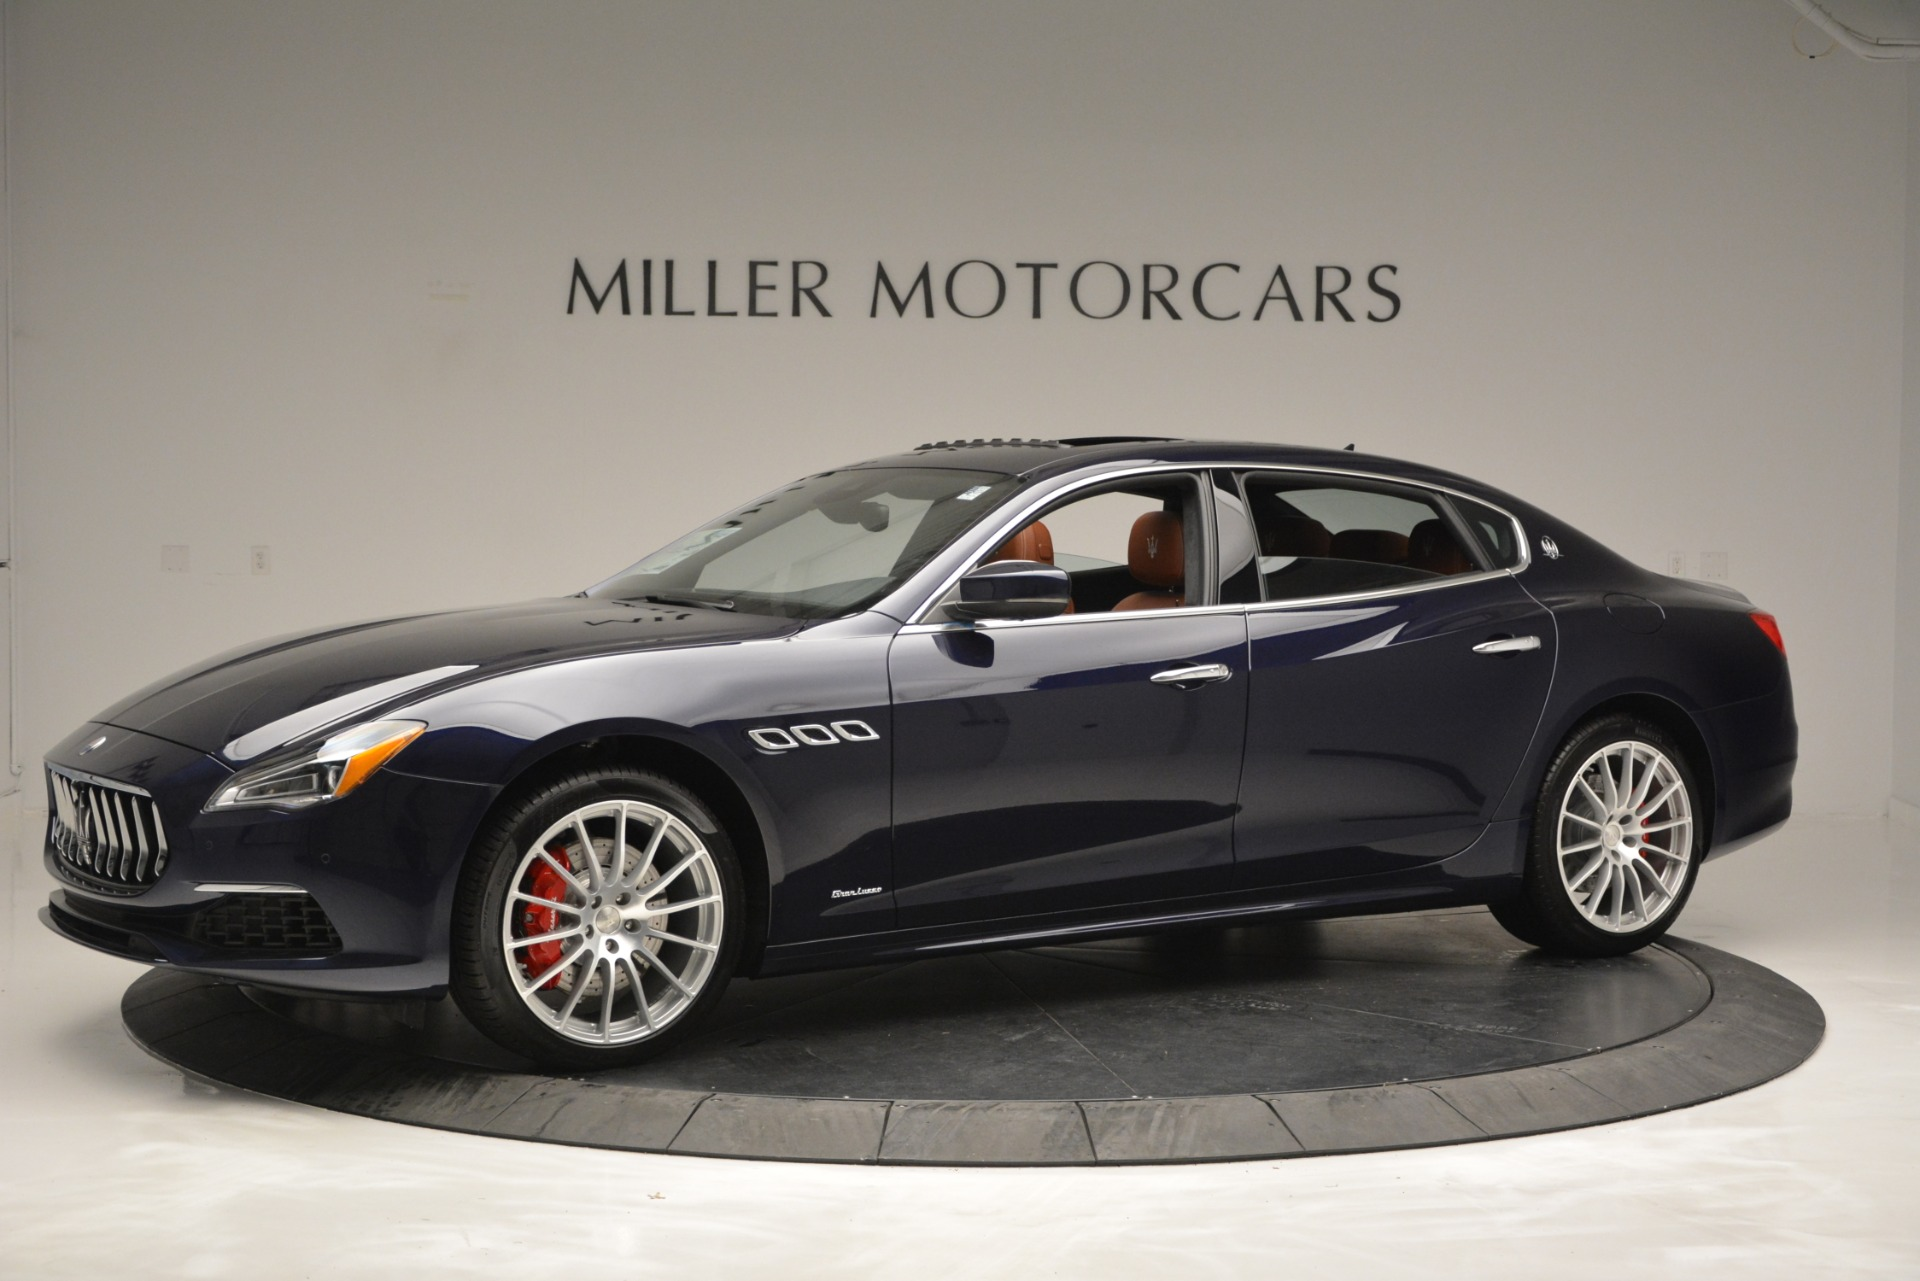 New 2019 Maserati Quattroporte S Q4 GranLusso For Sale In Westport, CT 2620_p2